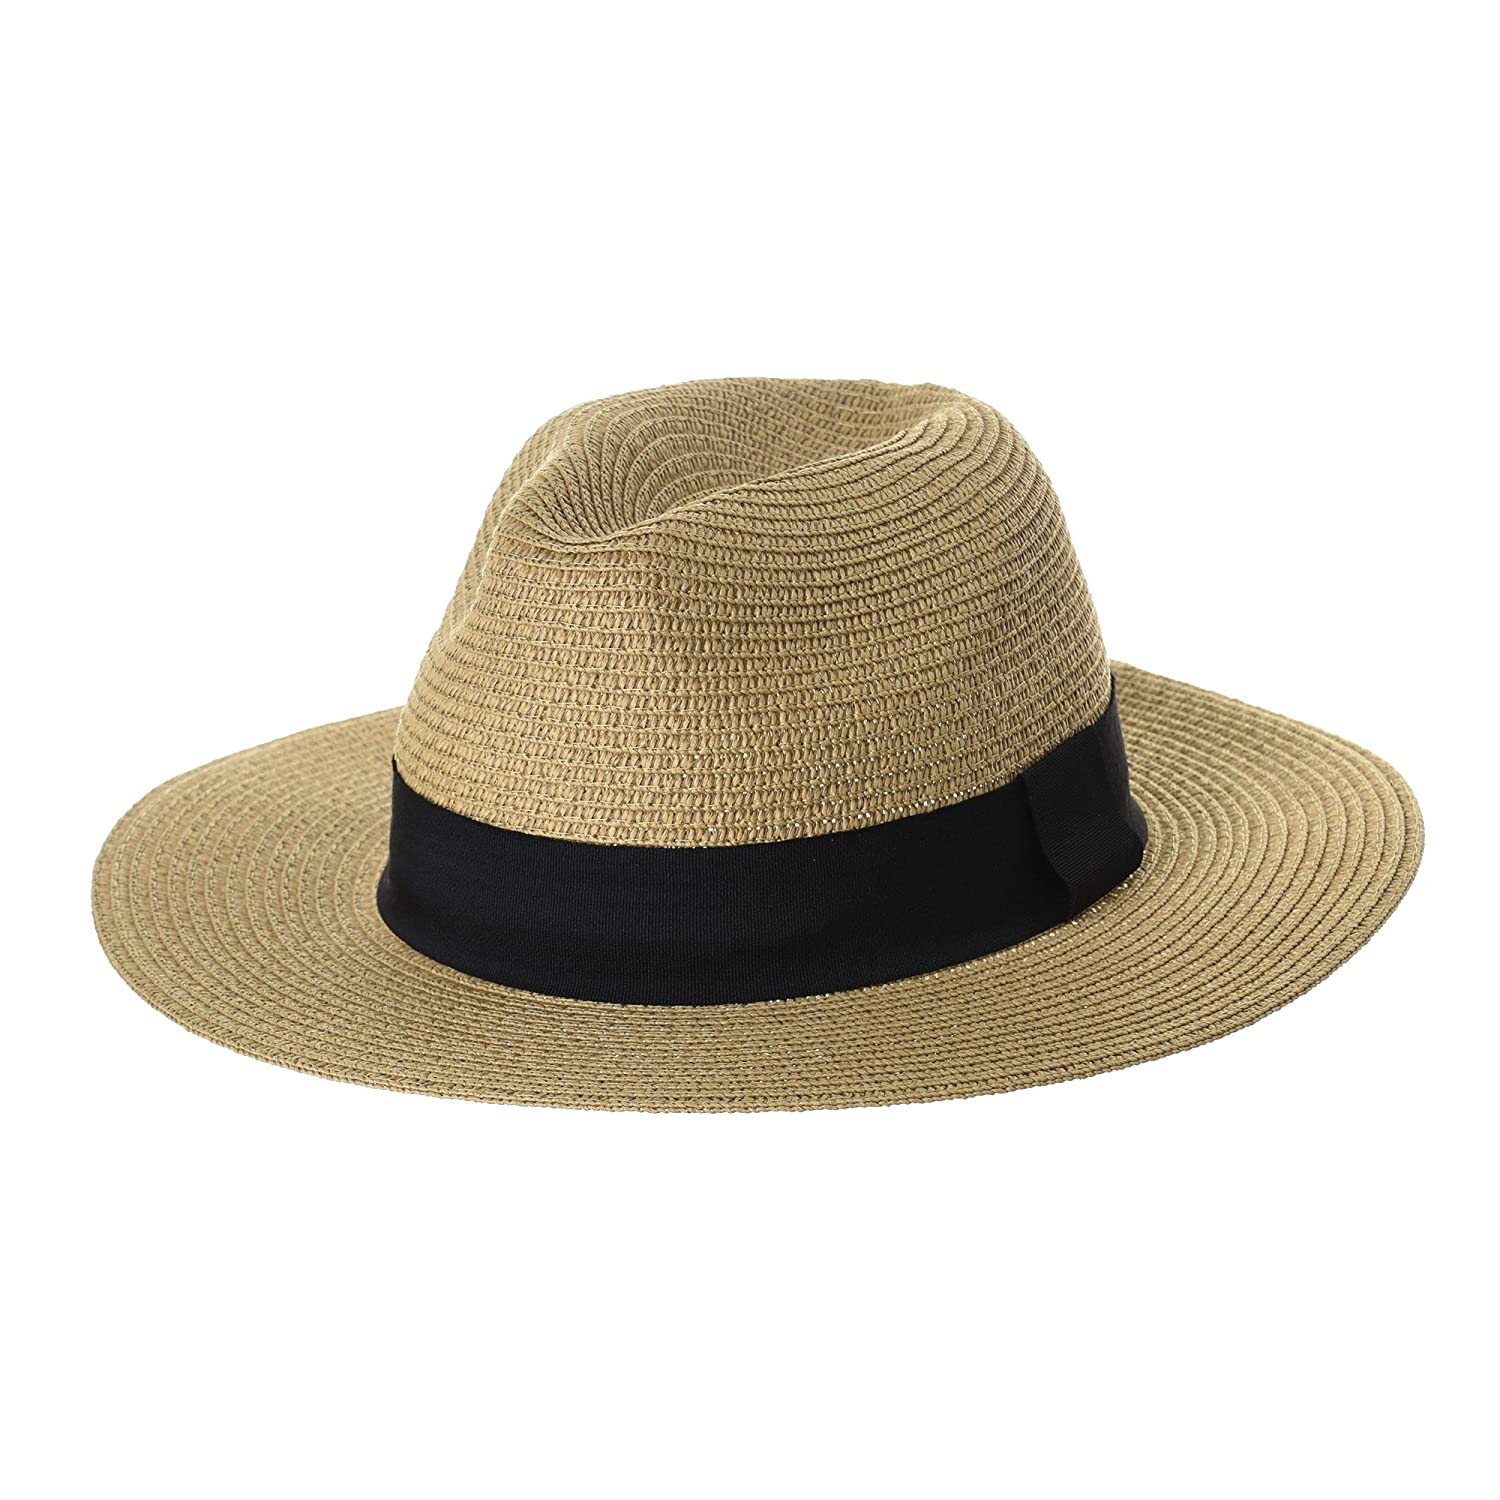 0a3cbe99afb74 WITHMOONS Sombrero Panamá Fedora Panama Hat Black Banded Wide Brim Cool  Summer SL6690 SL6690Beige